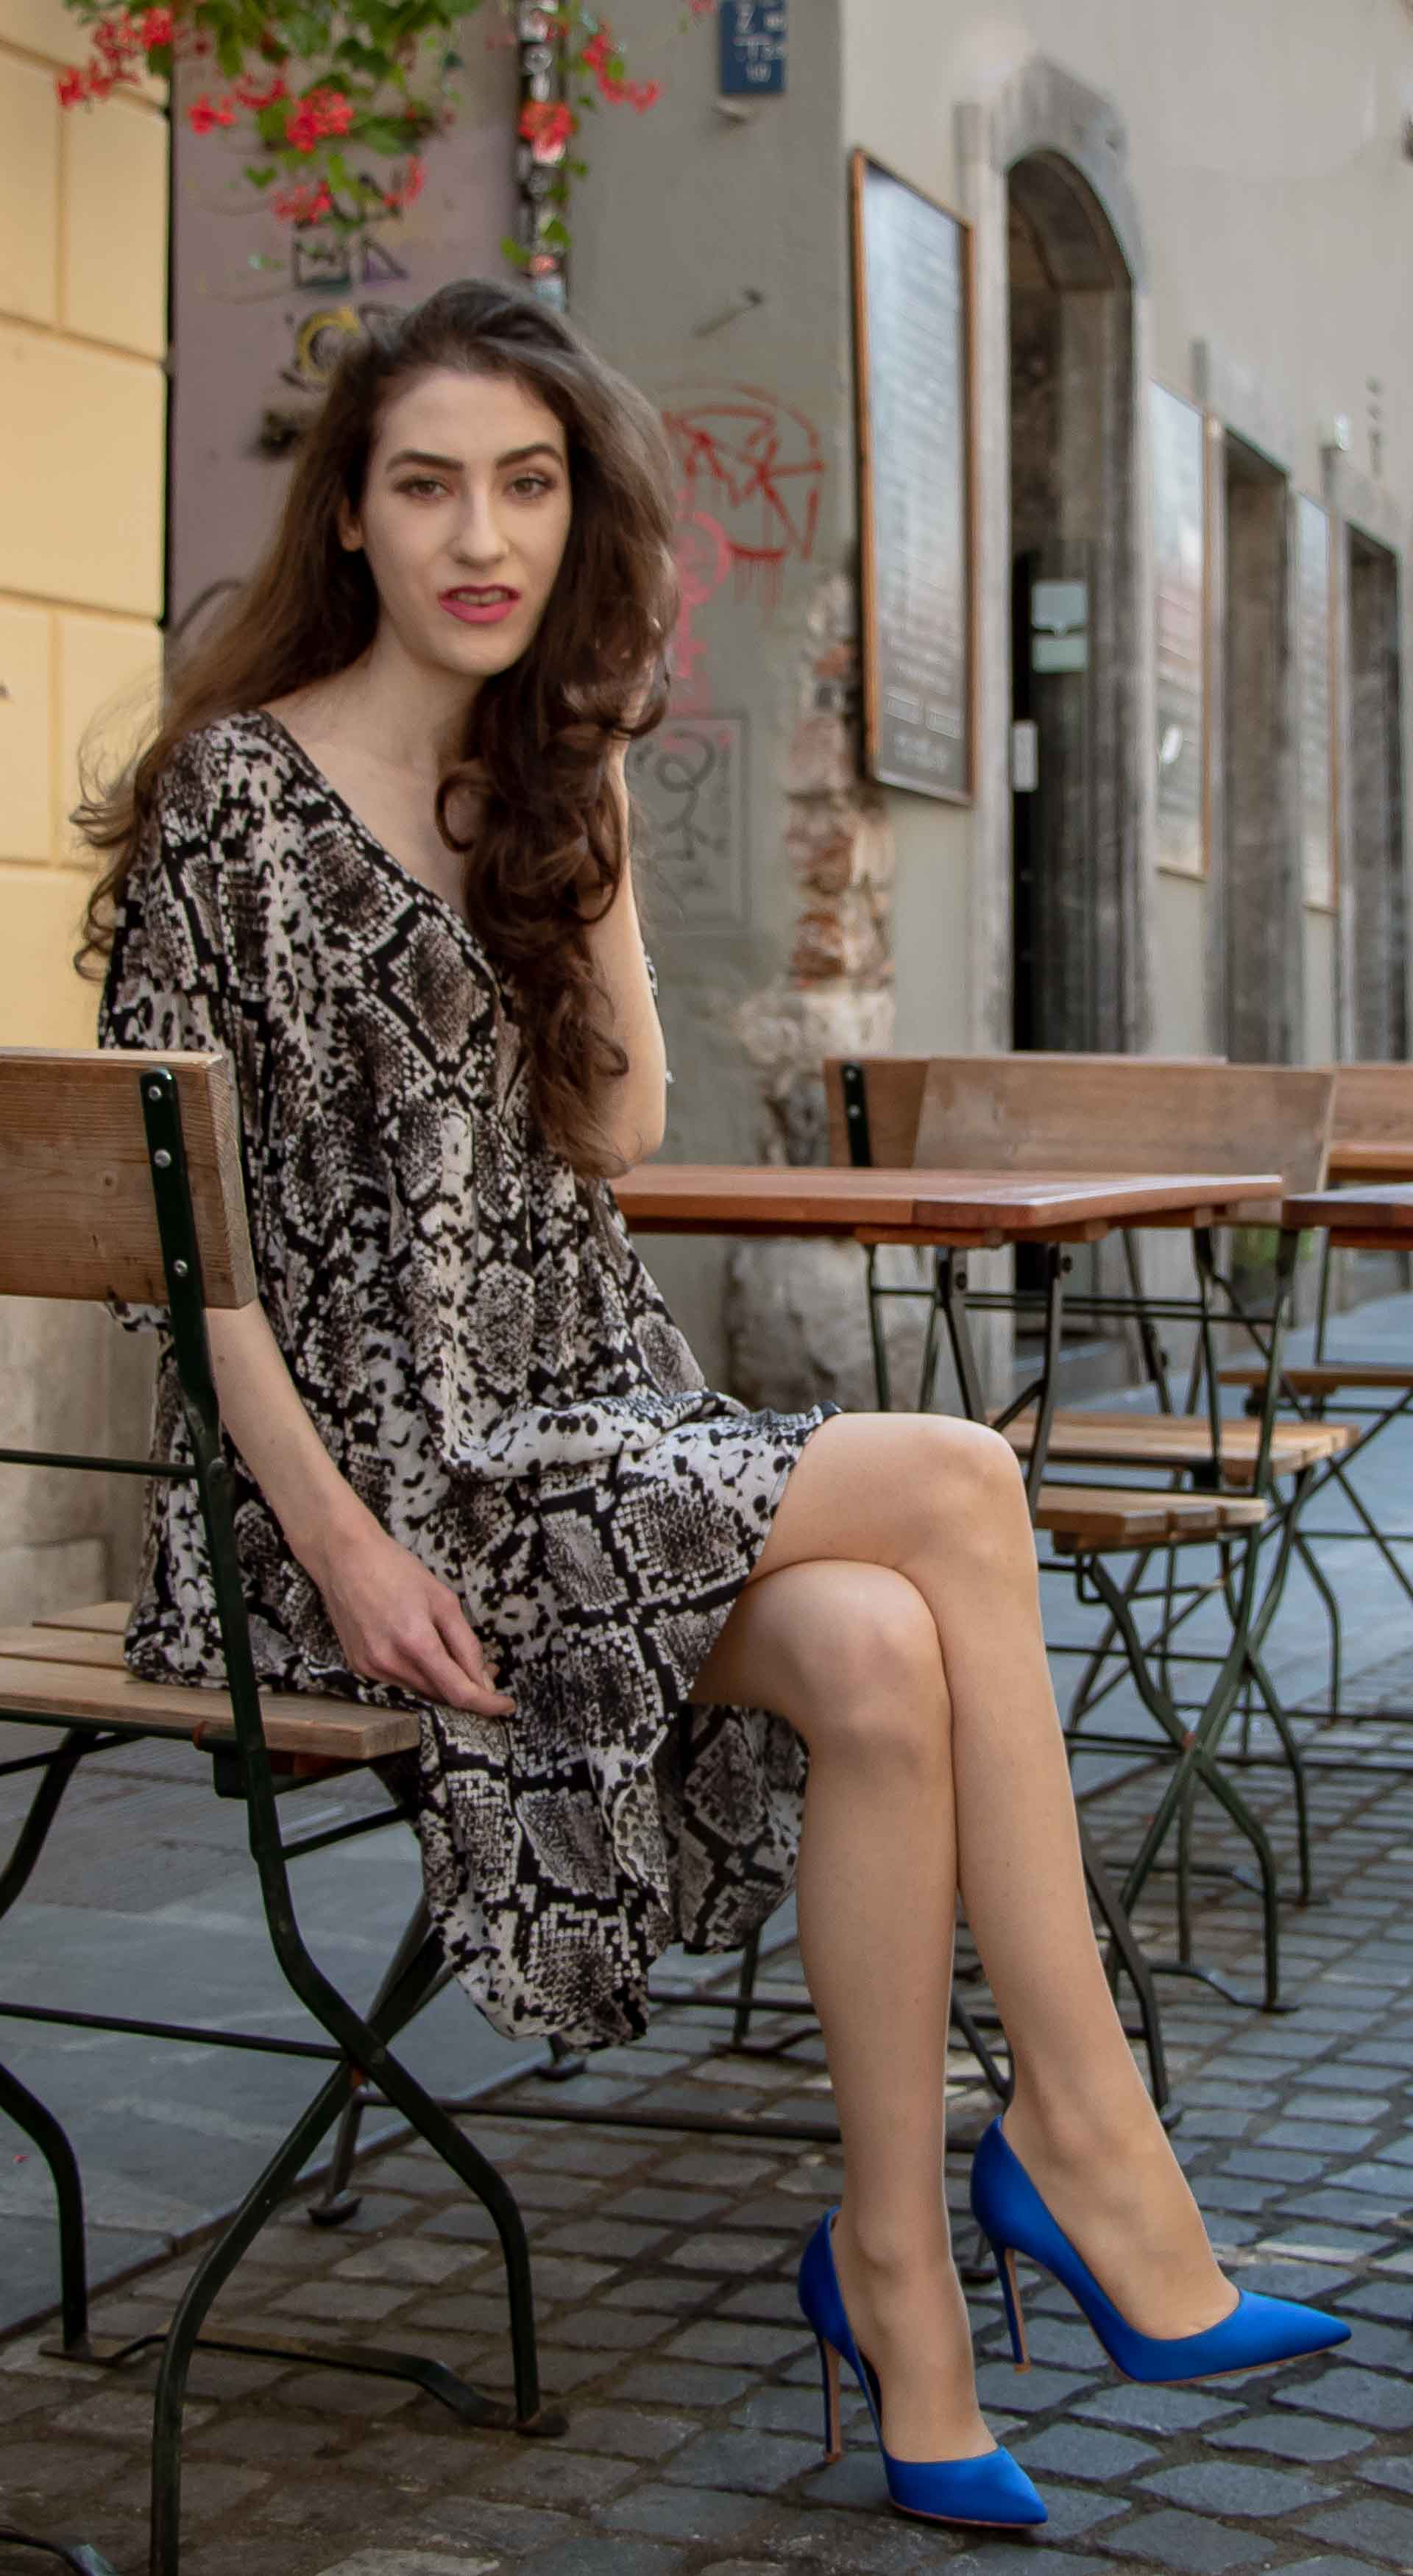 Beautiful Slovenian Fashion Blogger Veronika Lipar of Brunette from Wall dressed in flowing short snake print dress from Zara, blue Gianvito Rossi satin pumps, sitting on the street